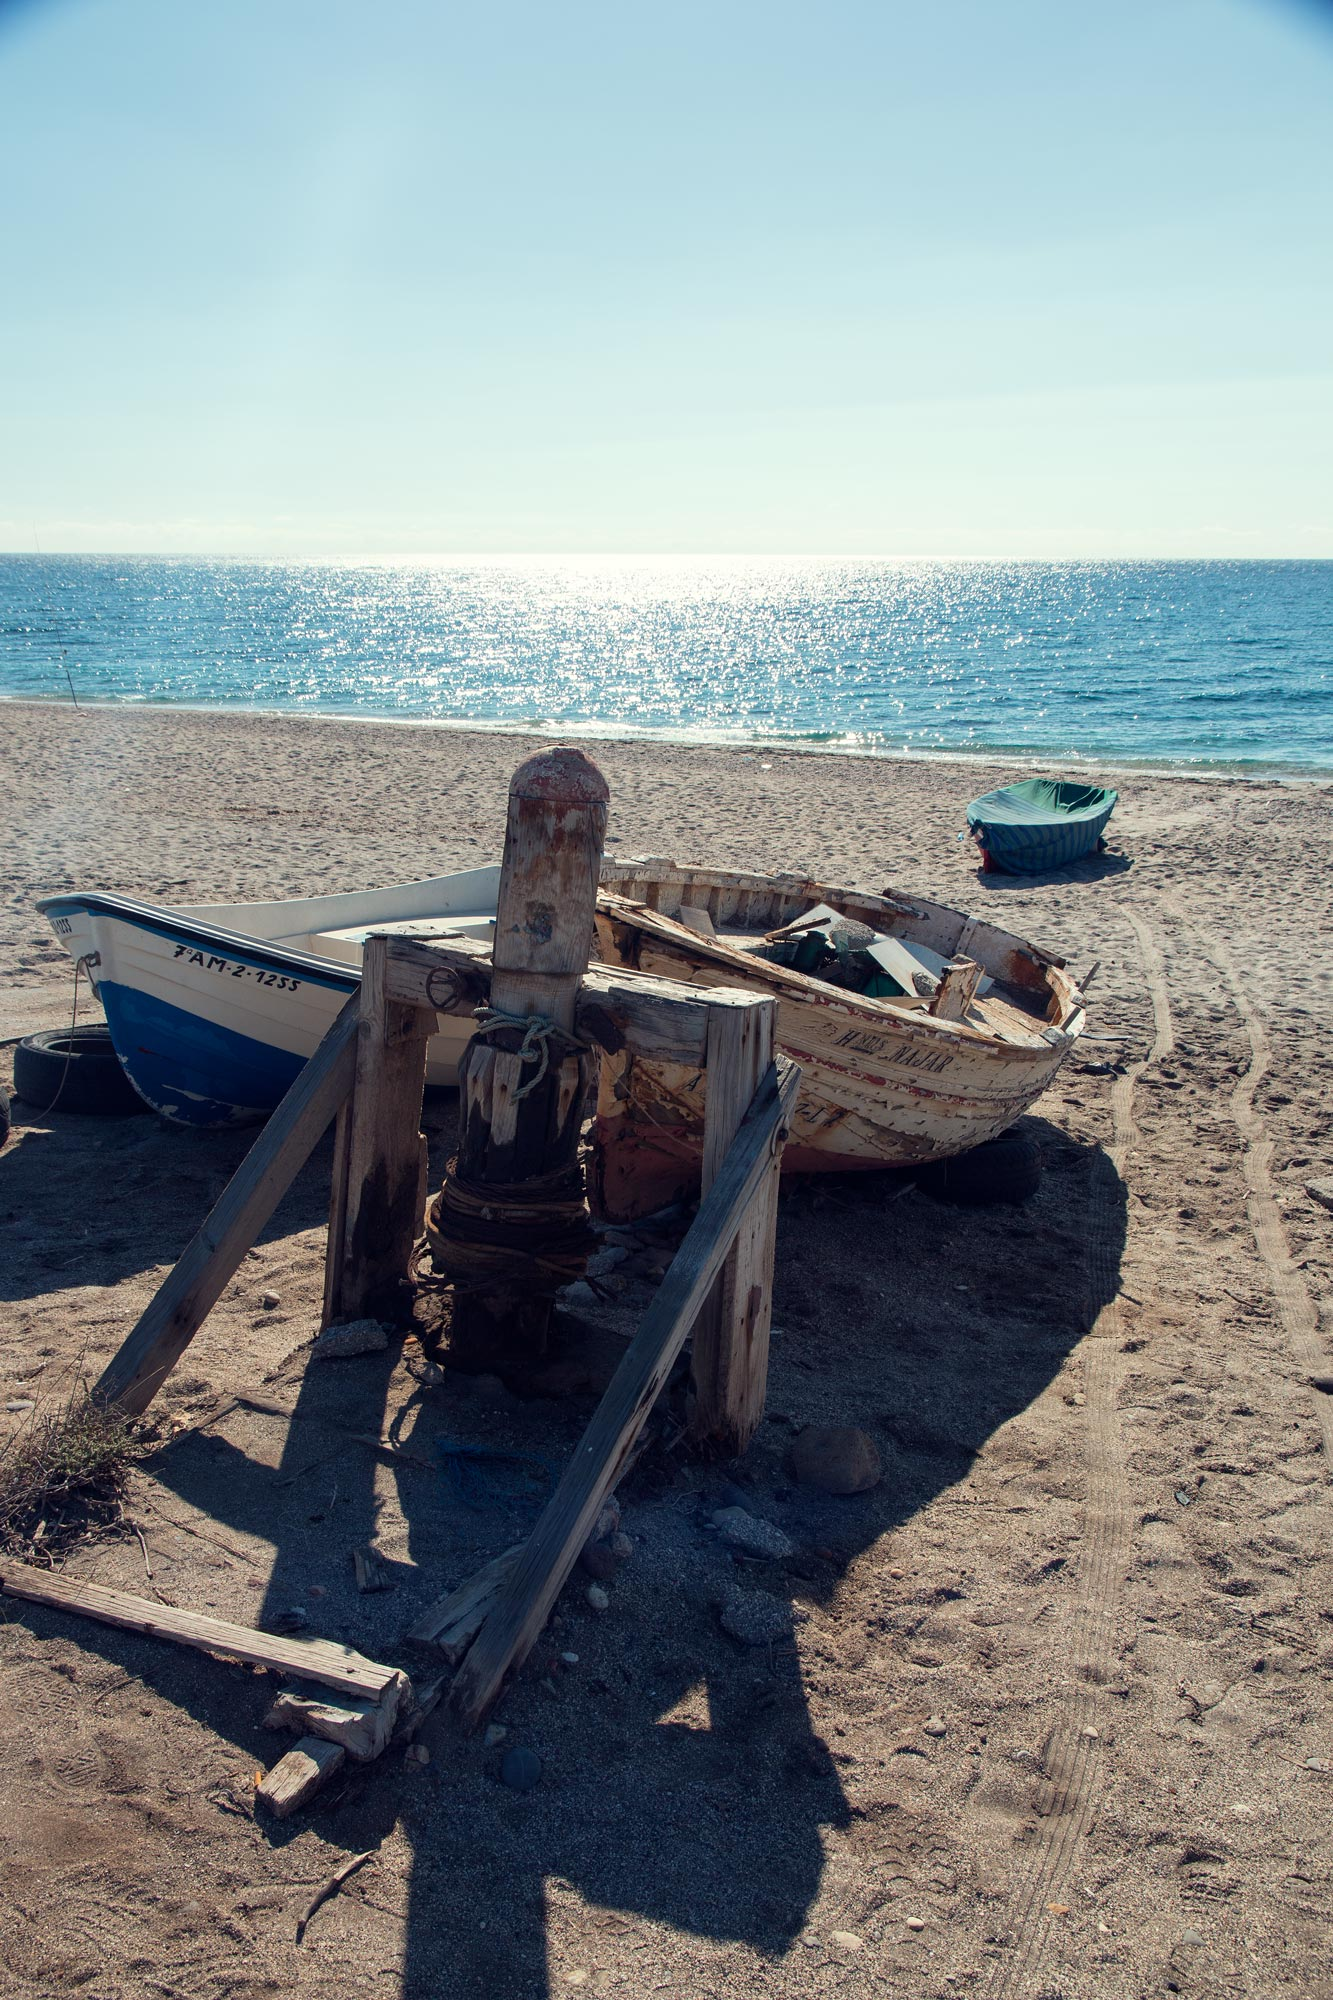 Fishing Boat at Playa De La Fabriquilla.